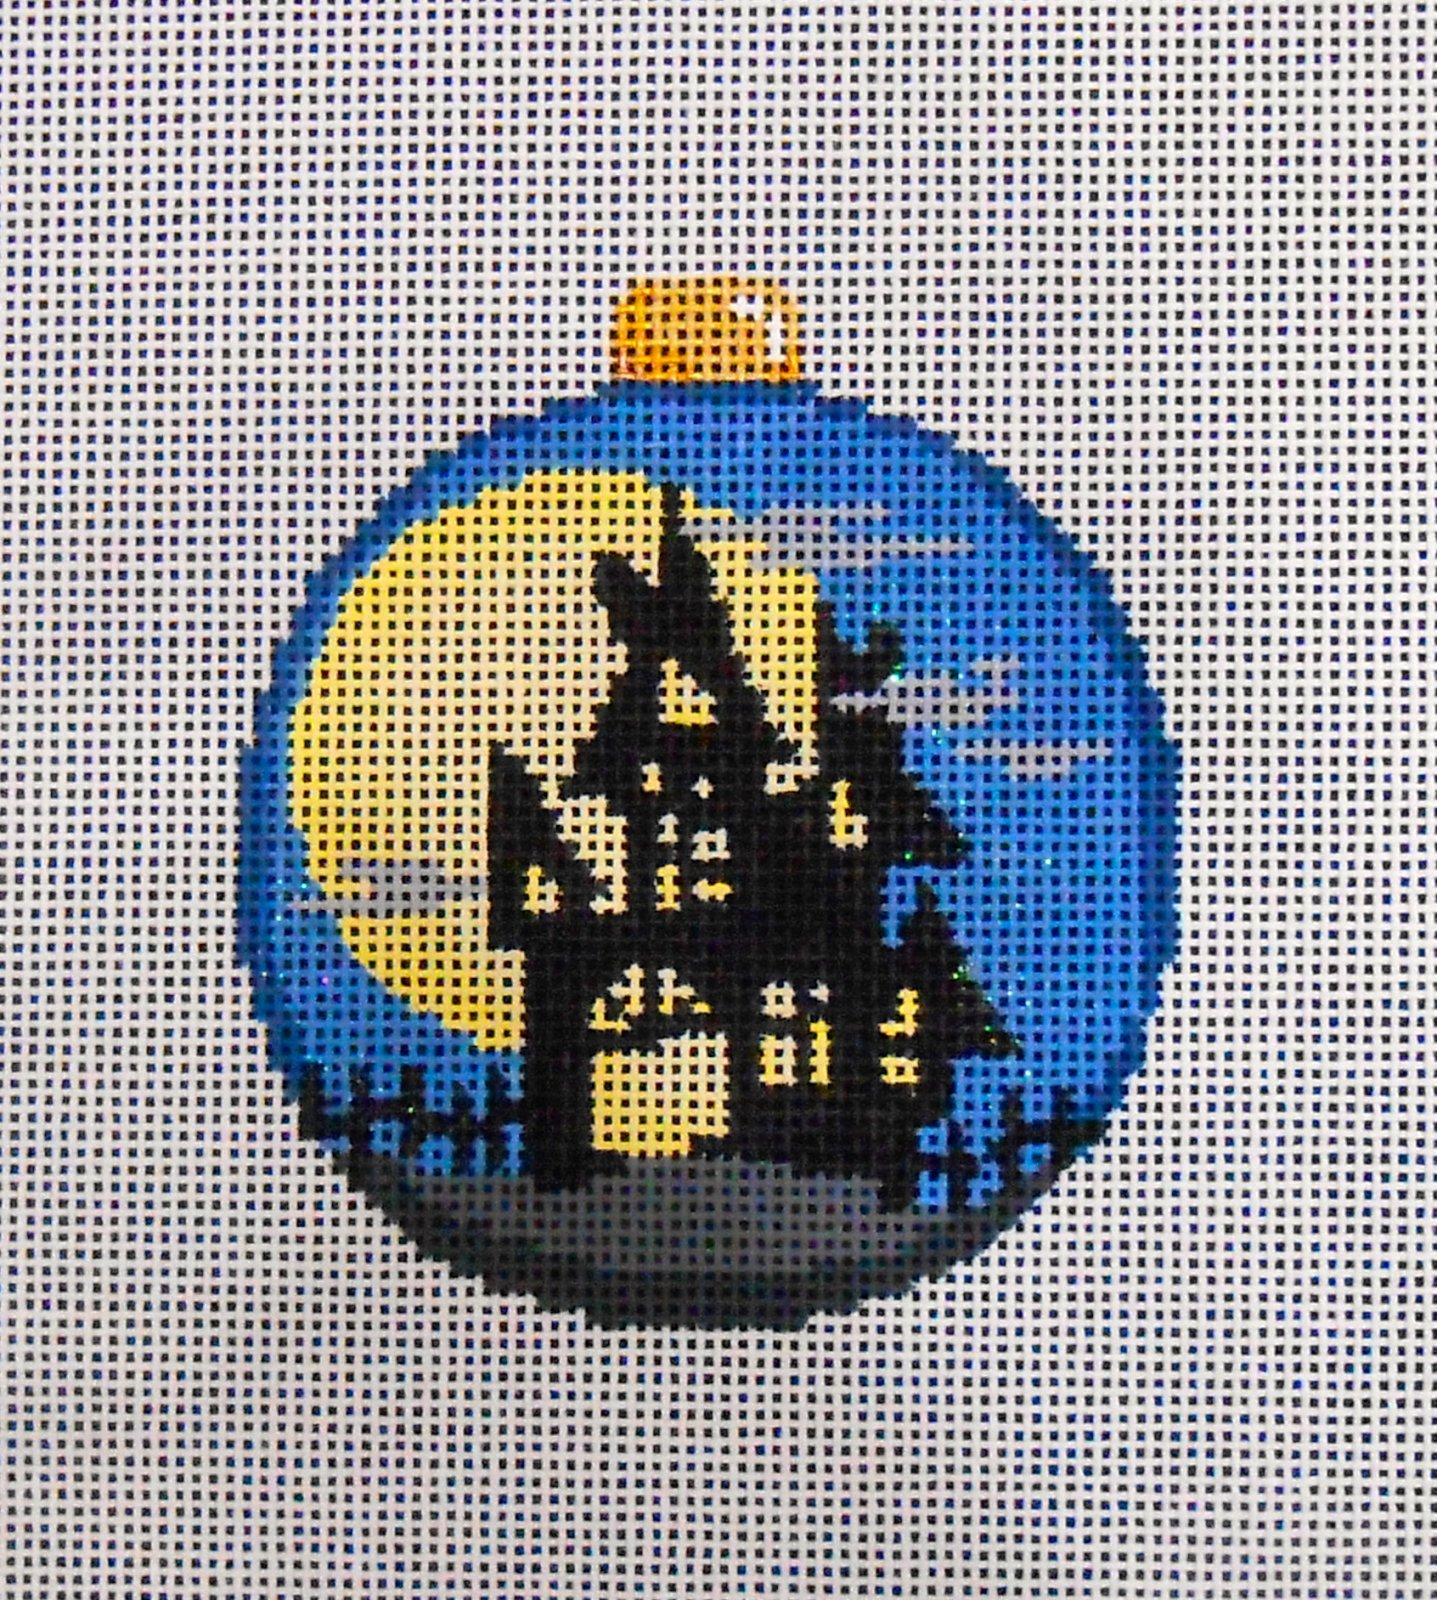 Haunted House Ball Ornament